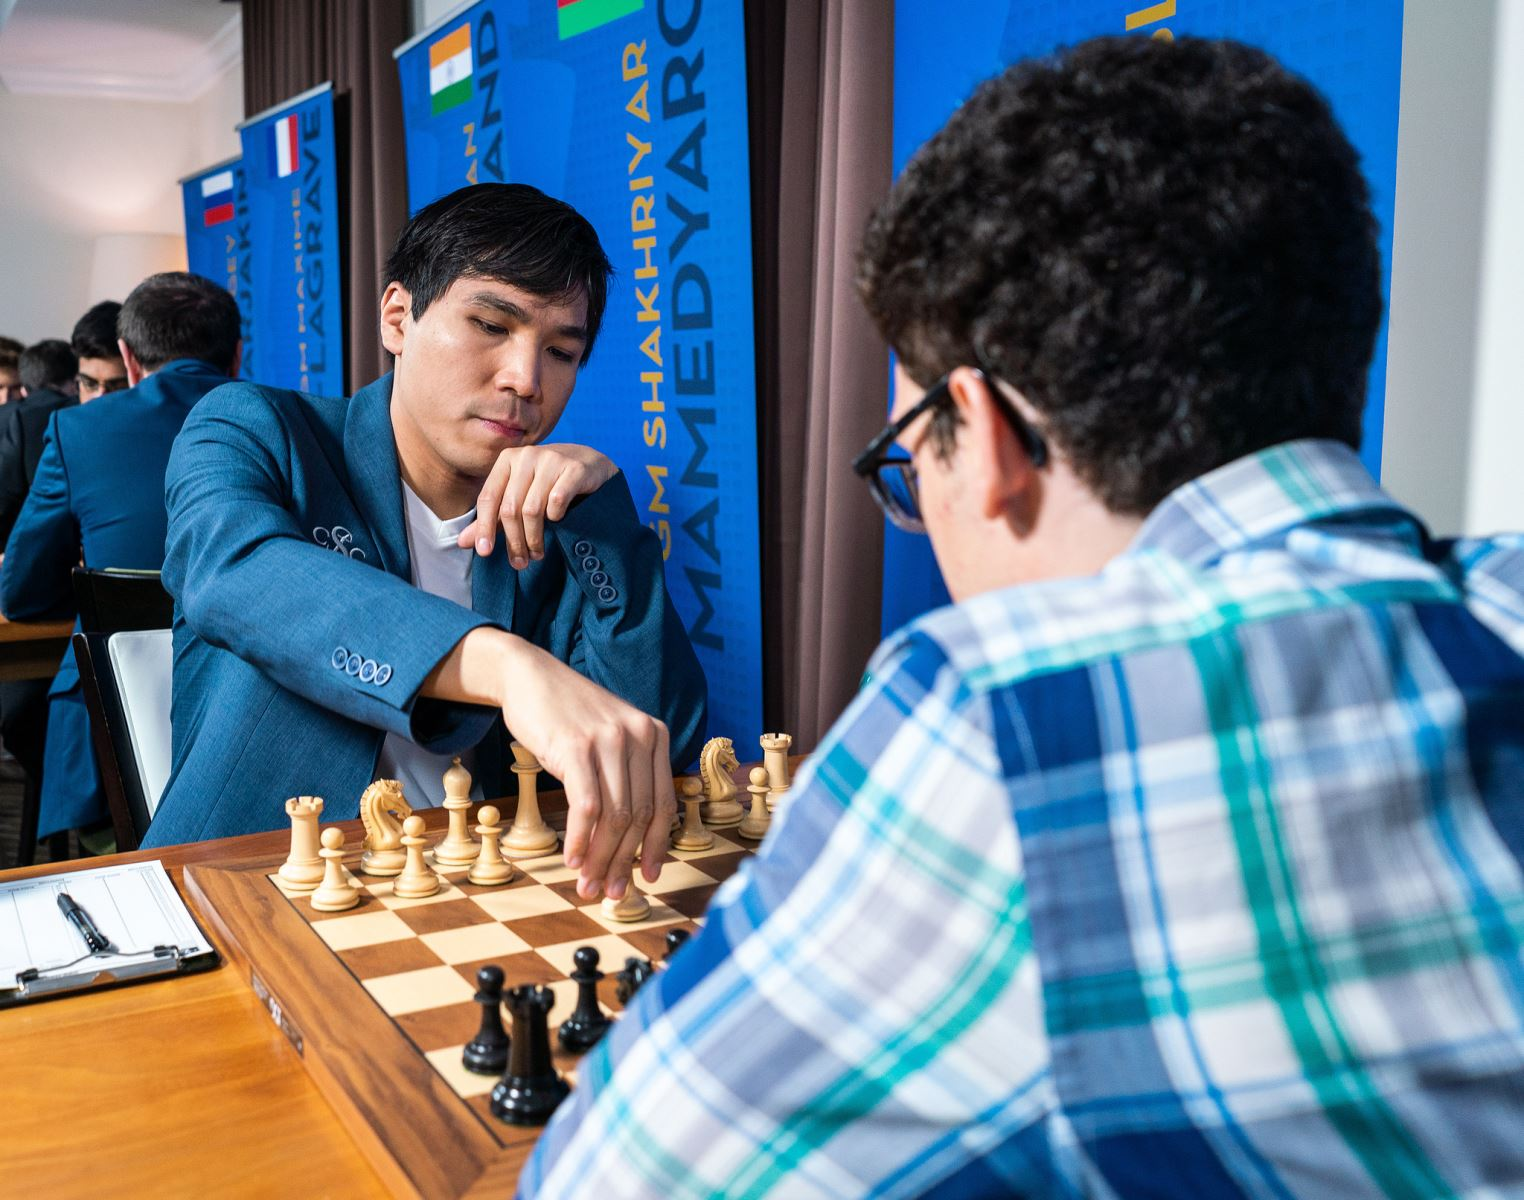 Wesley So beginning his final round game against Fabiano Caruana at the 2018 Sinquefield Cup